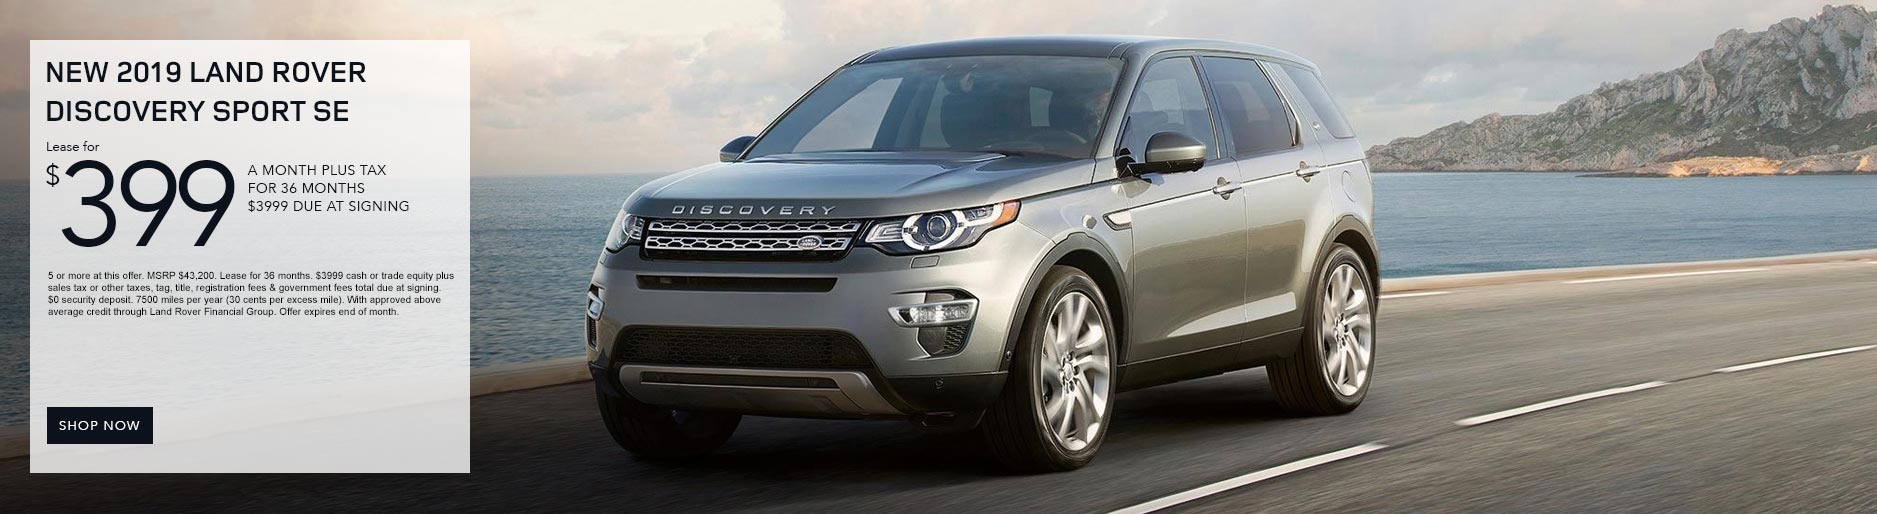 Land Rover Discovery Lease >> Land Rover South Bay Land Rover Dealership Near Me Torrance Ca